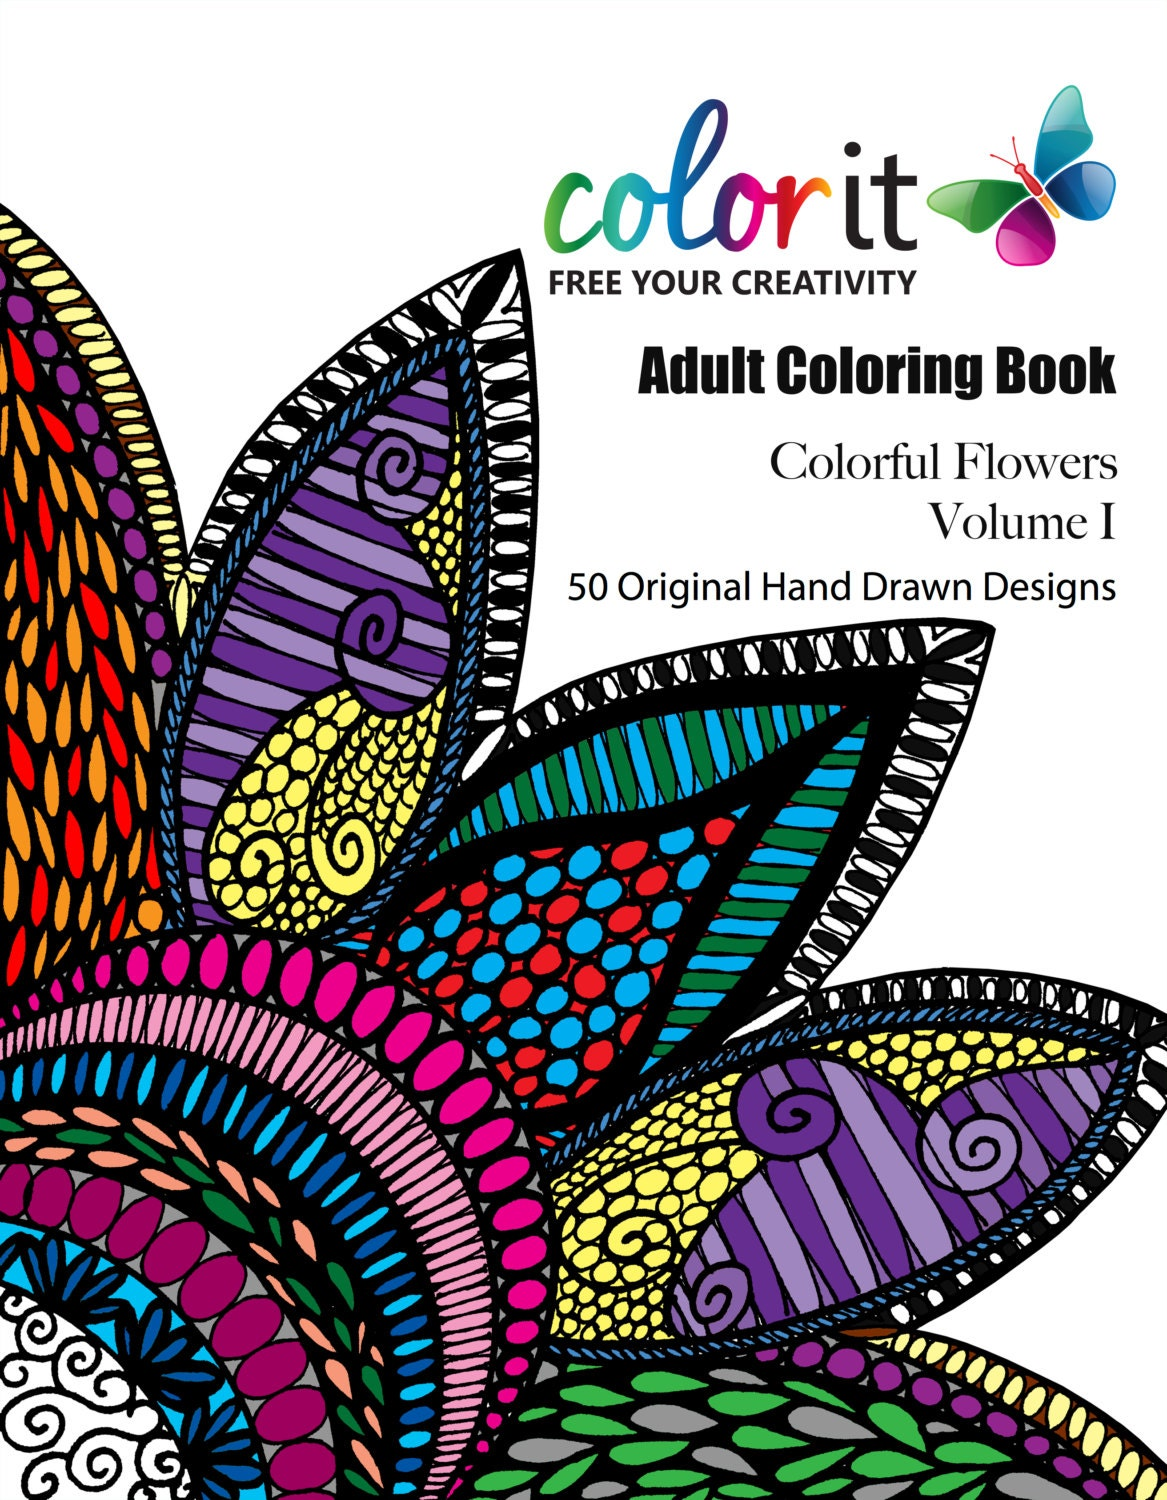 50 Original Flowers To Color Colorful Volume 1 By